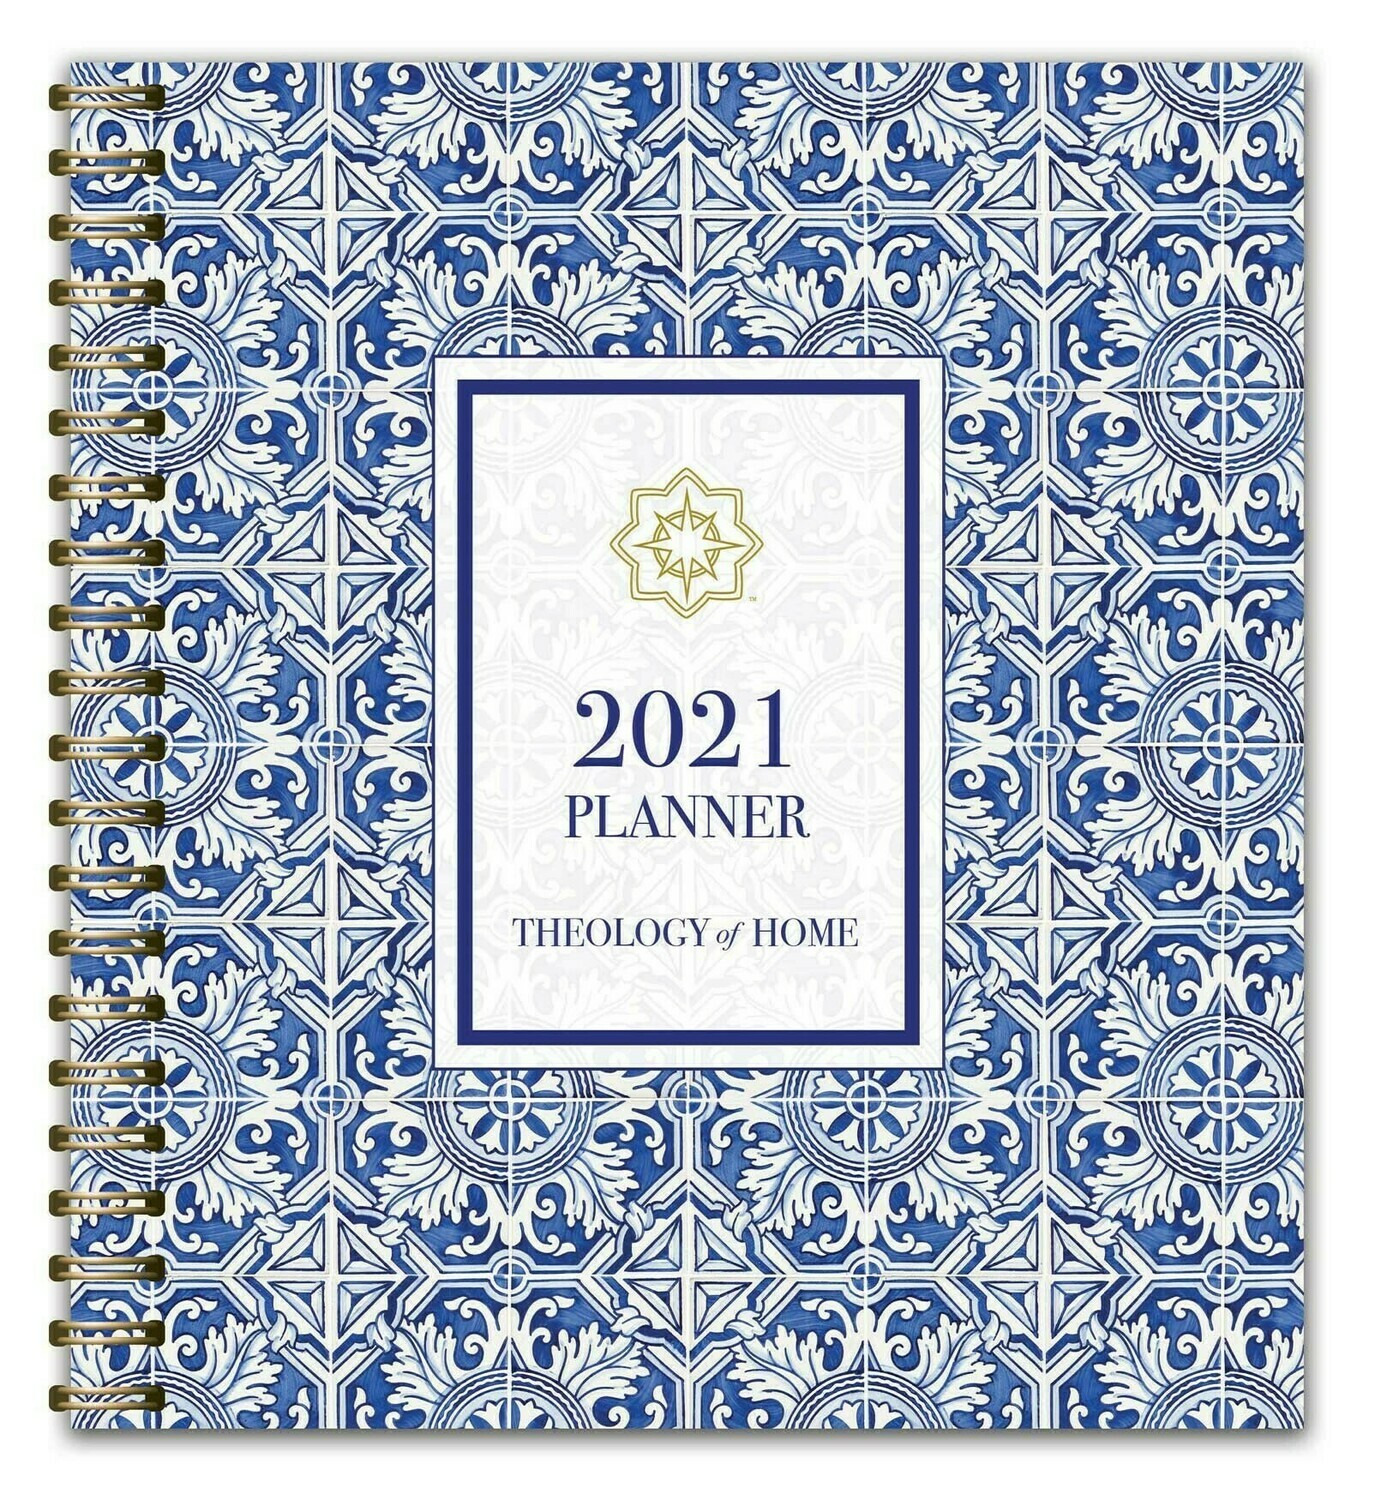 2021 Theology of Home Planner by Carrie Gress